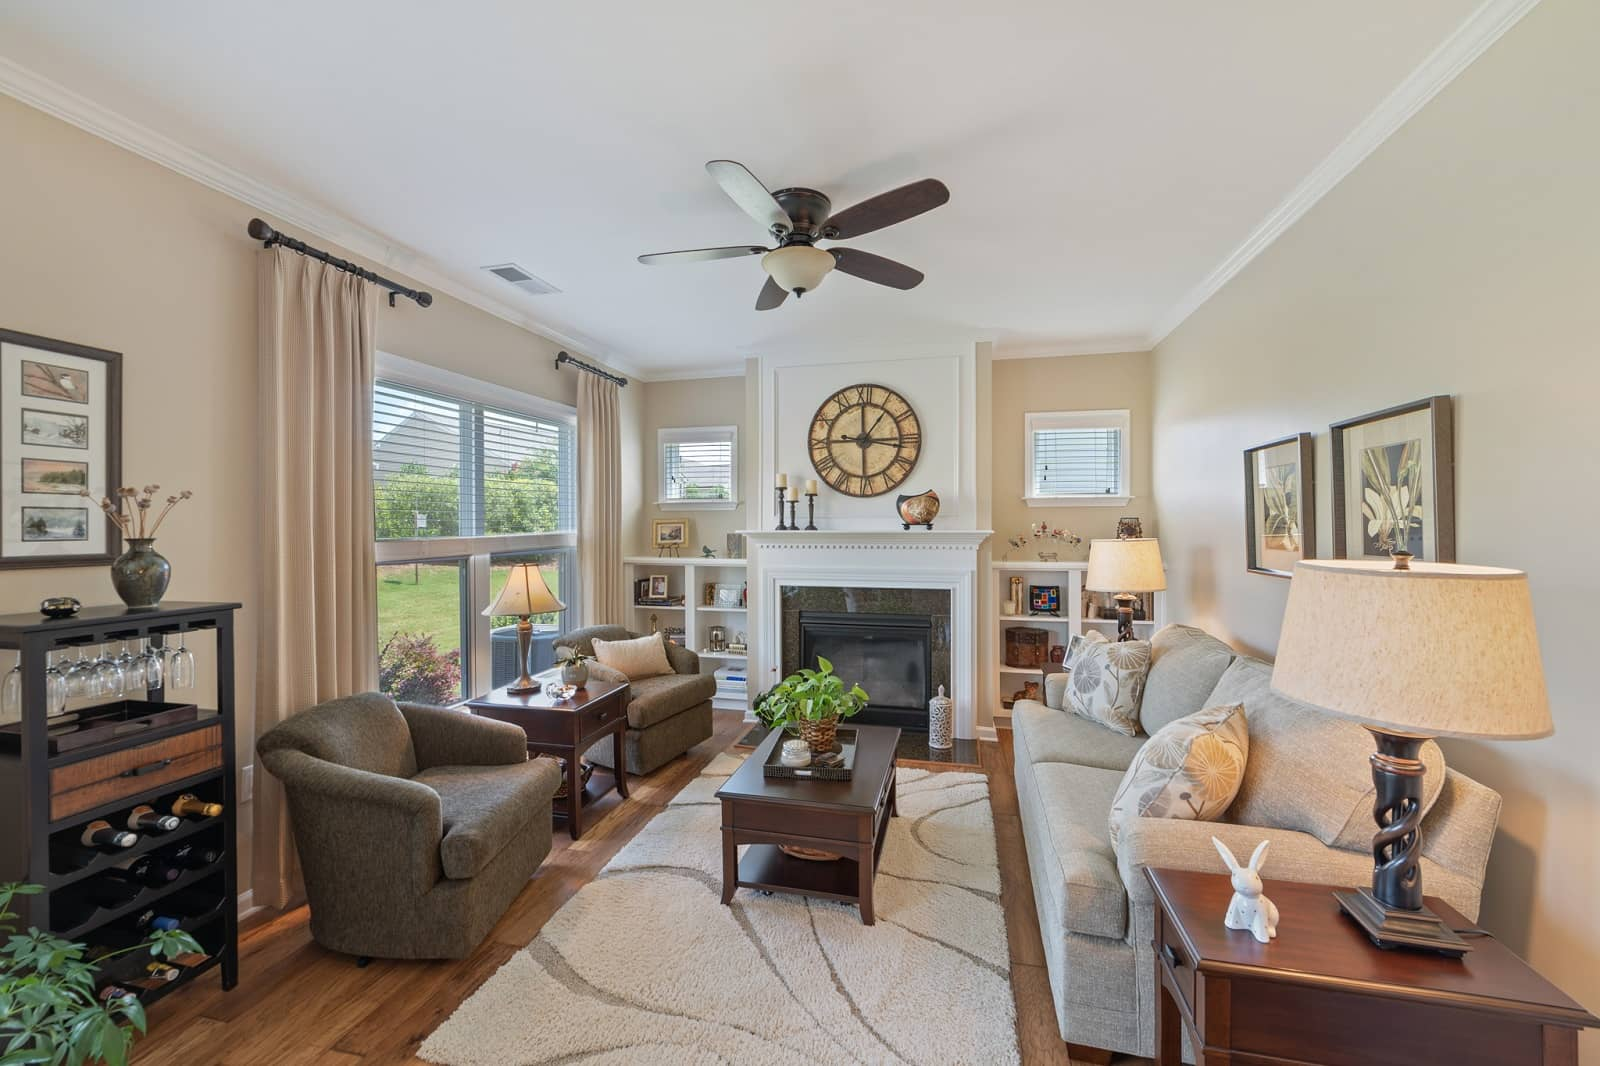 Real Estate Photography in Durham - NC - USA - Living Area View